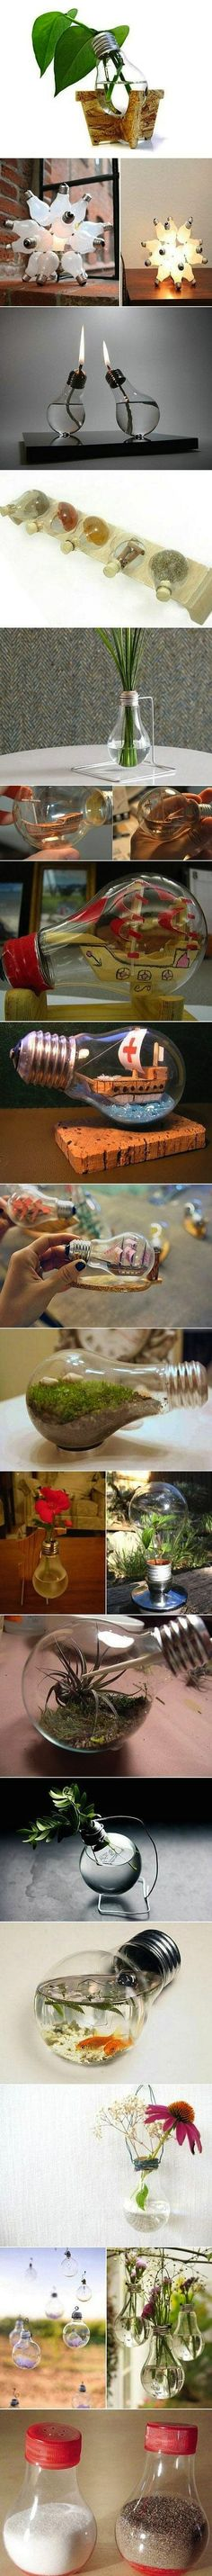 Clever Ways To Up-Cycle Your Dead Lightbulbs | HooplaHa.com